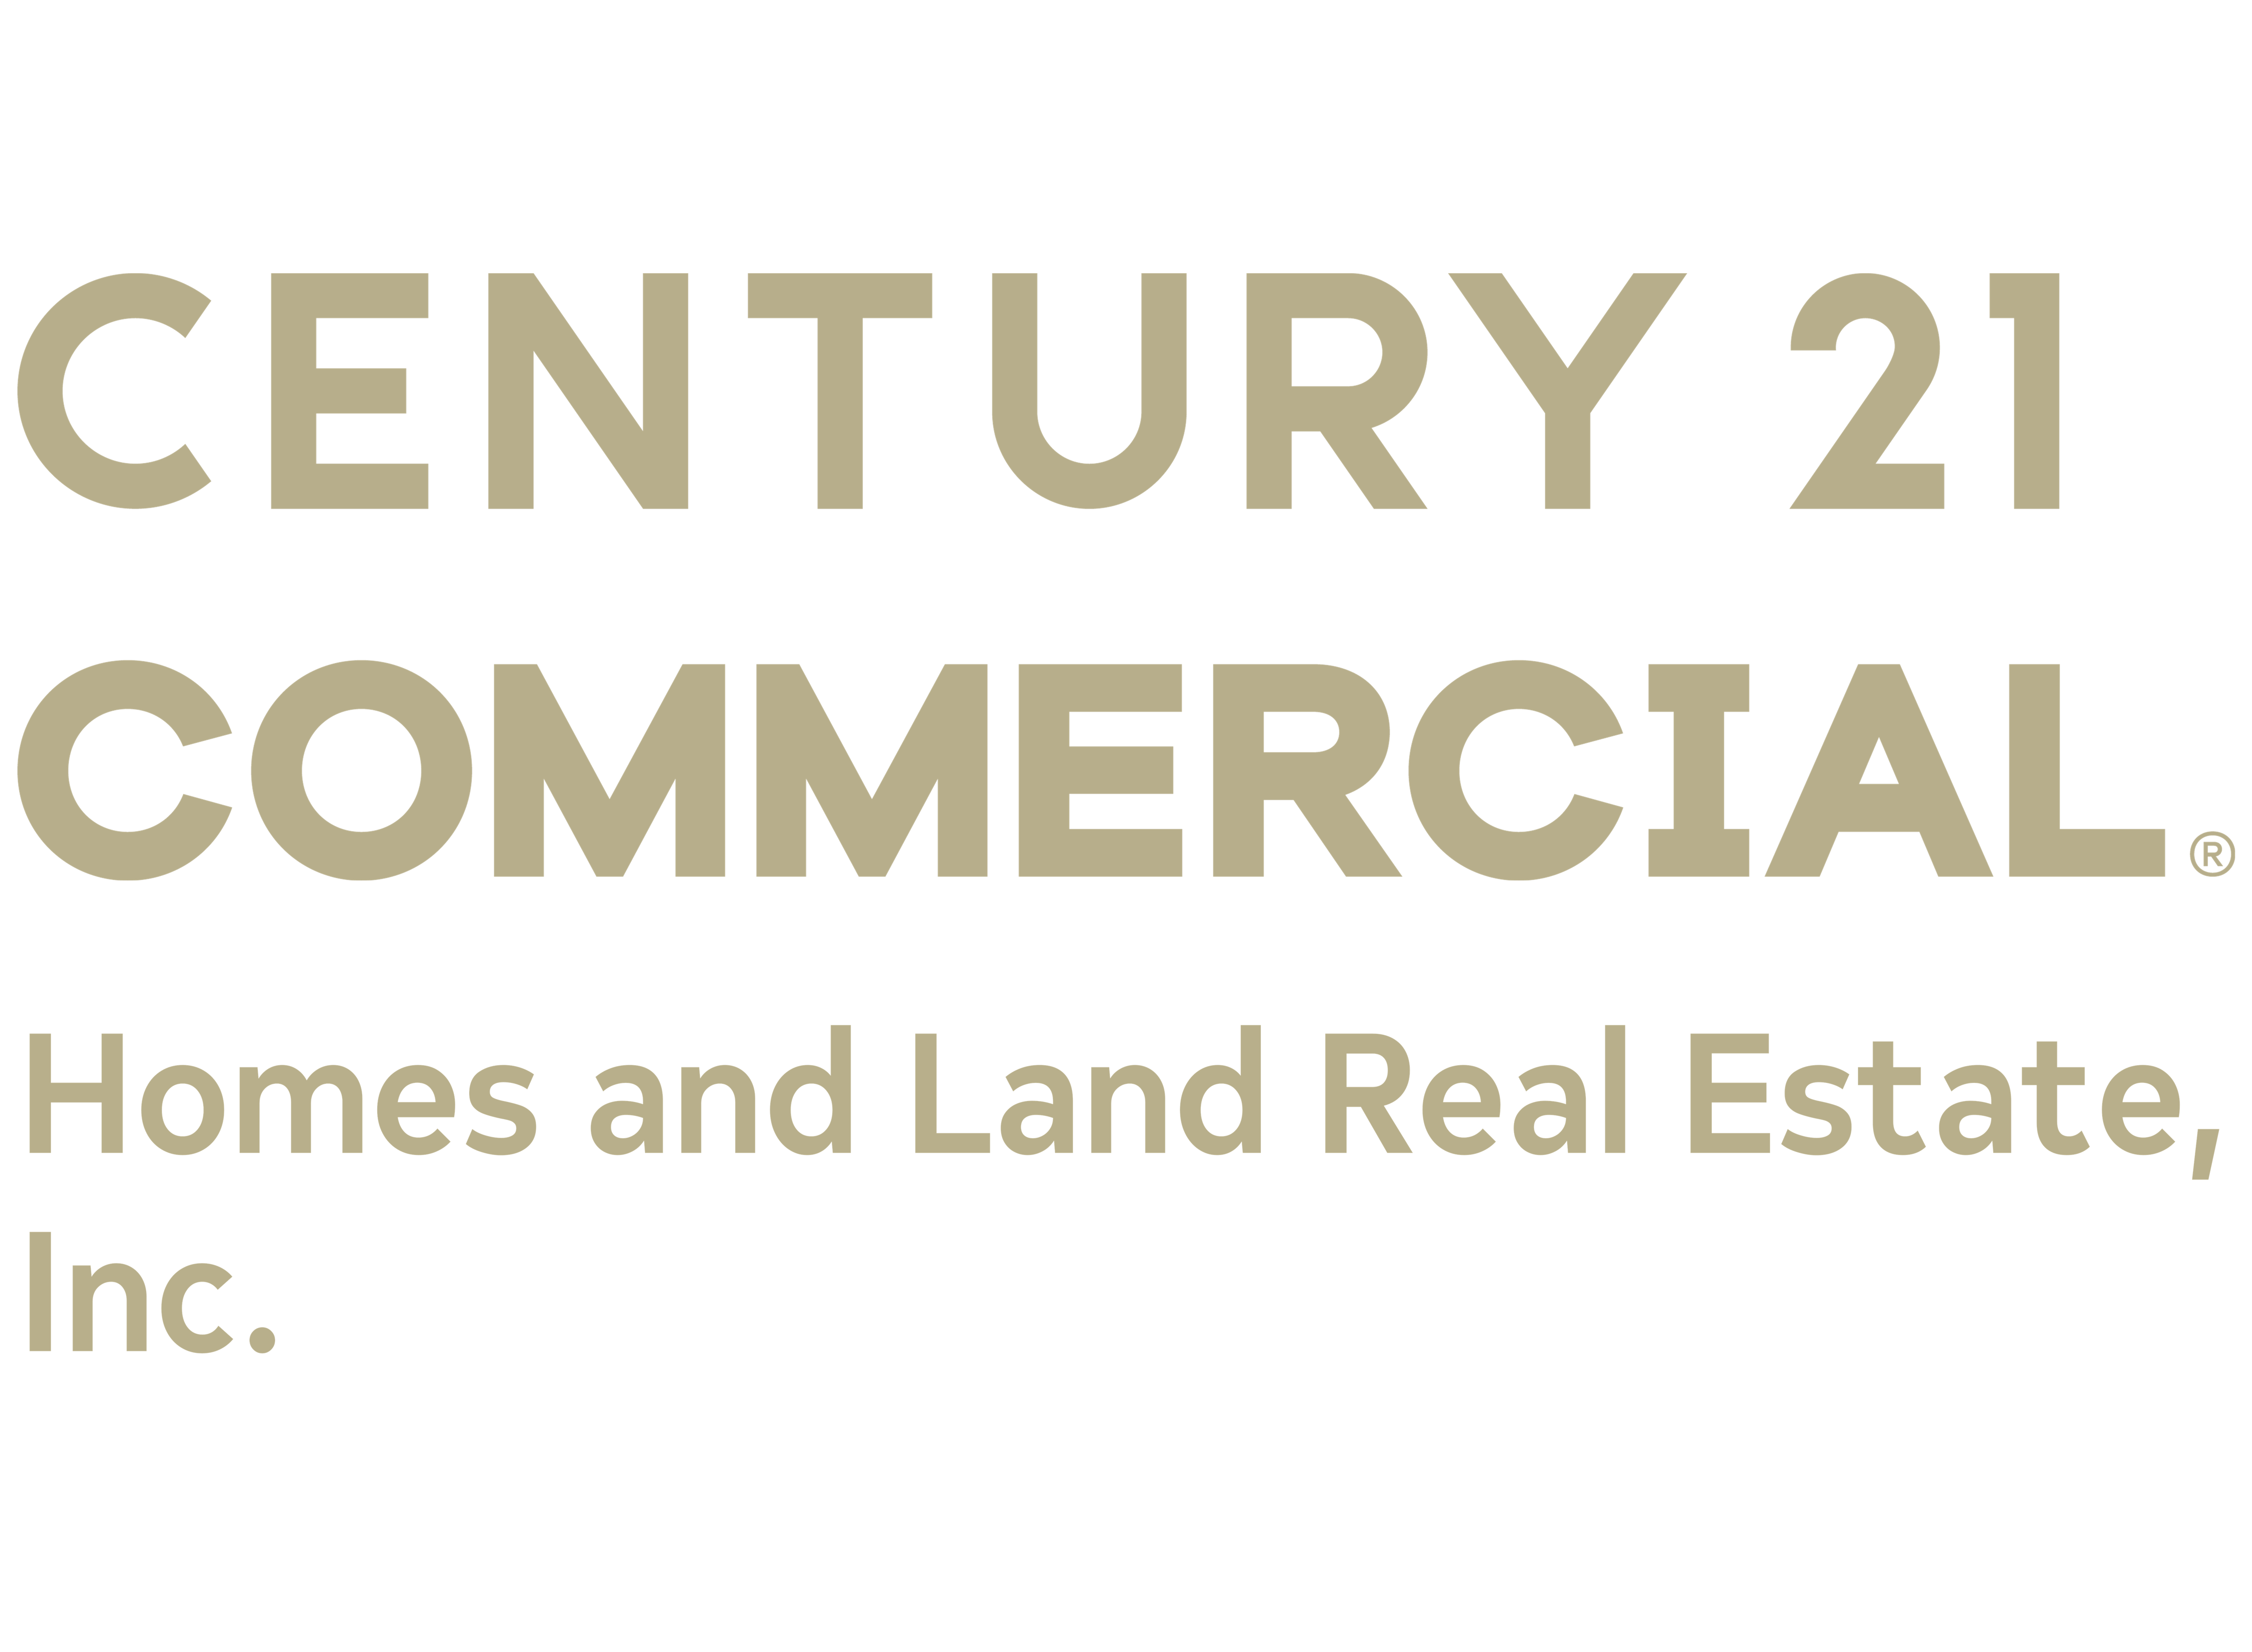 Patrick Lucas of CENTURY 21 Homes and Land Real Estate, Inc. logo